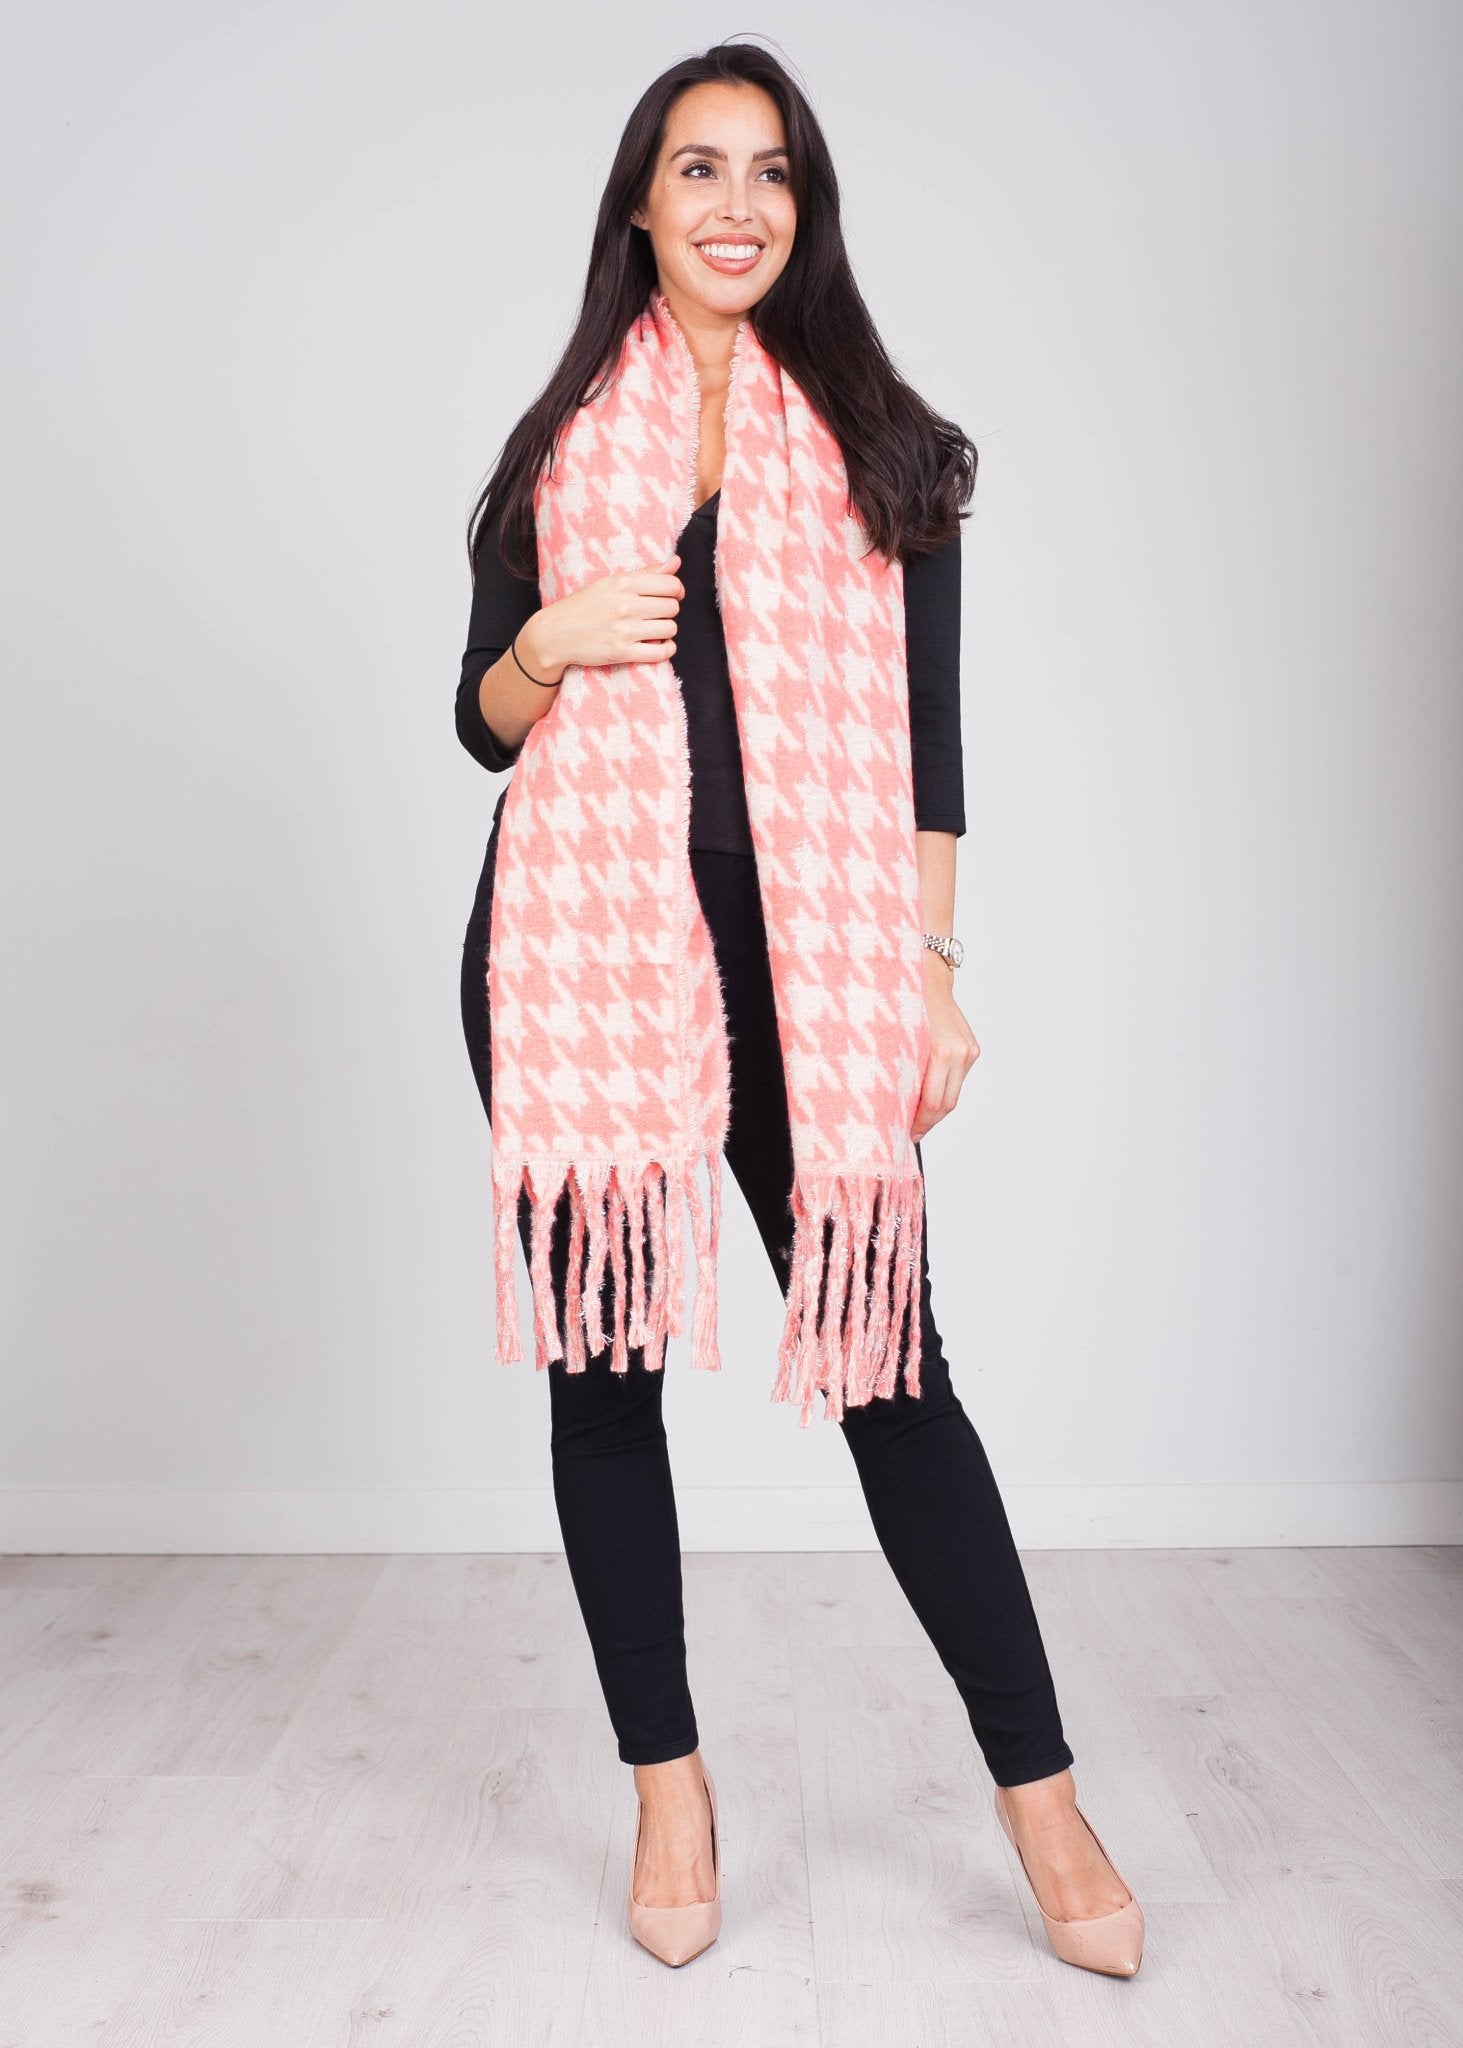 Priya Peach Houndstooth Scarf - The Walk in Wardrobe